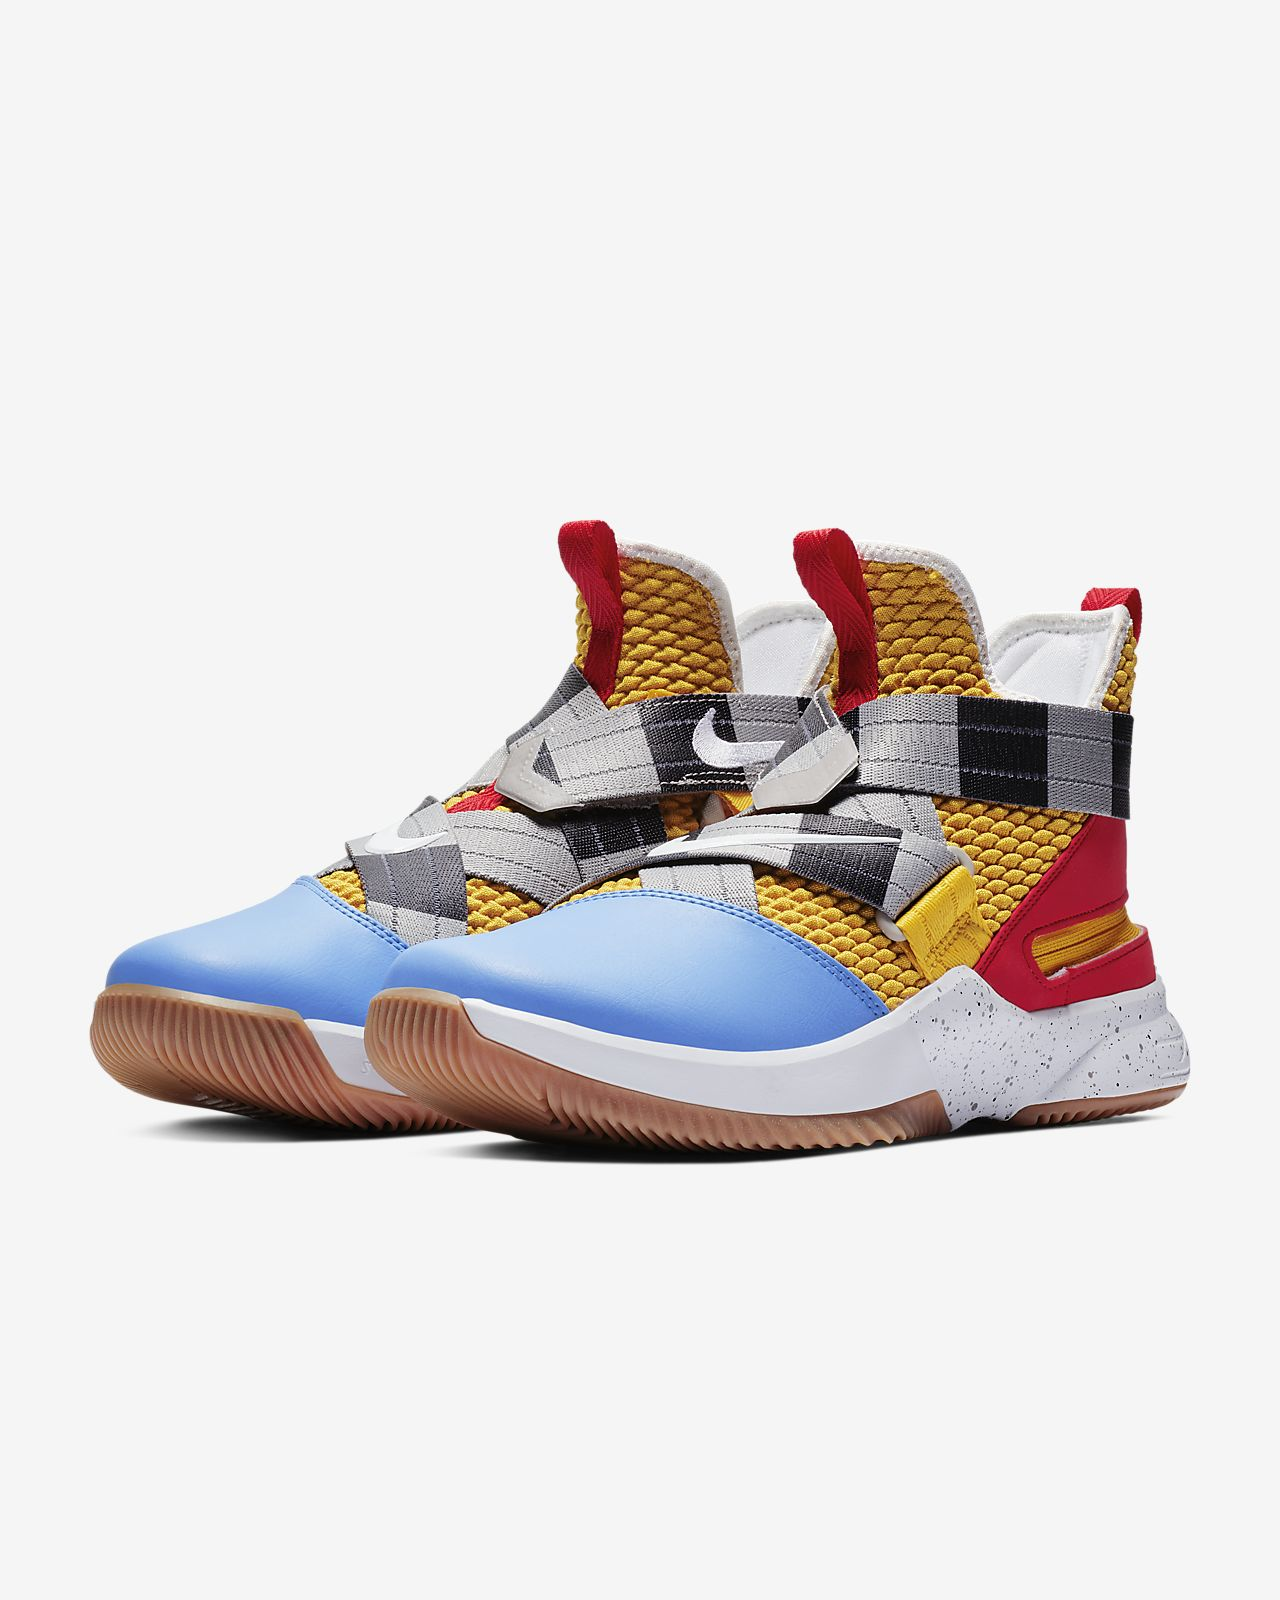 buy popular d3470 beb60 Chaussure de basketball LeBron Soldier 12 FlyEase pour Homme. Nike ...